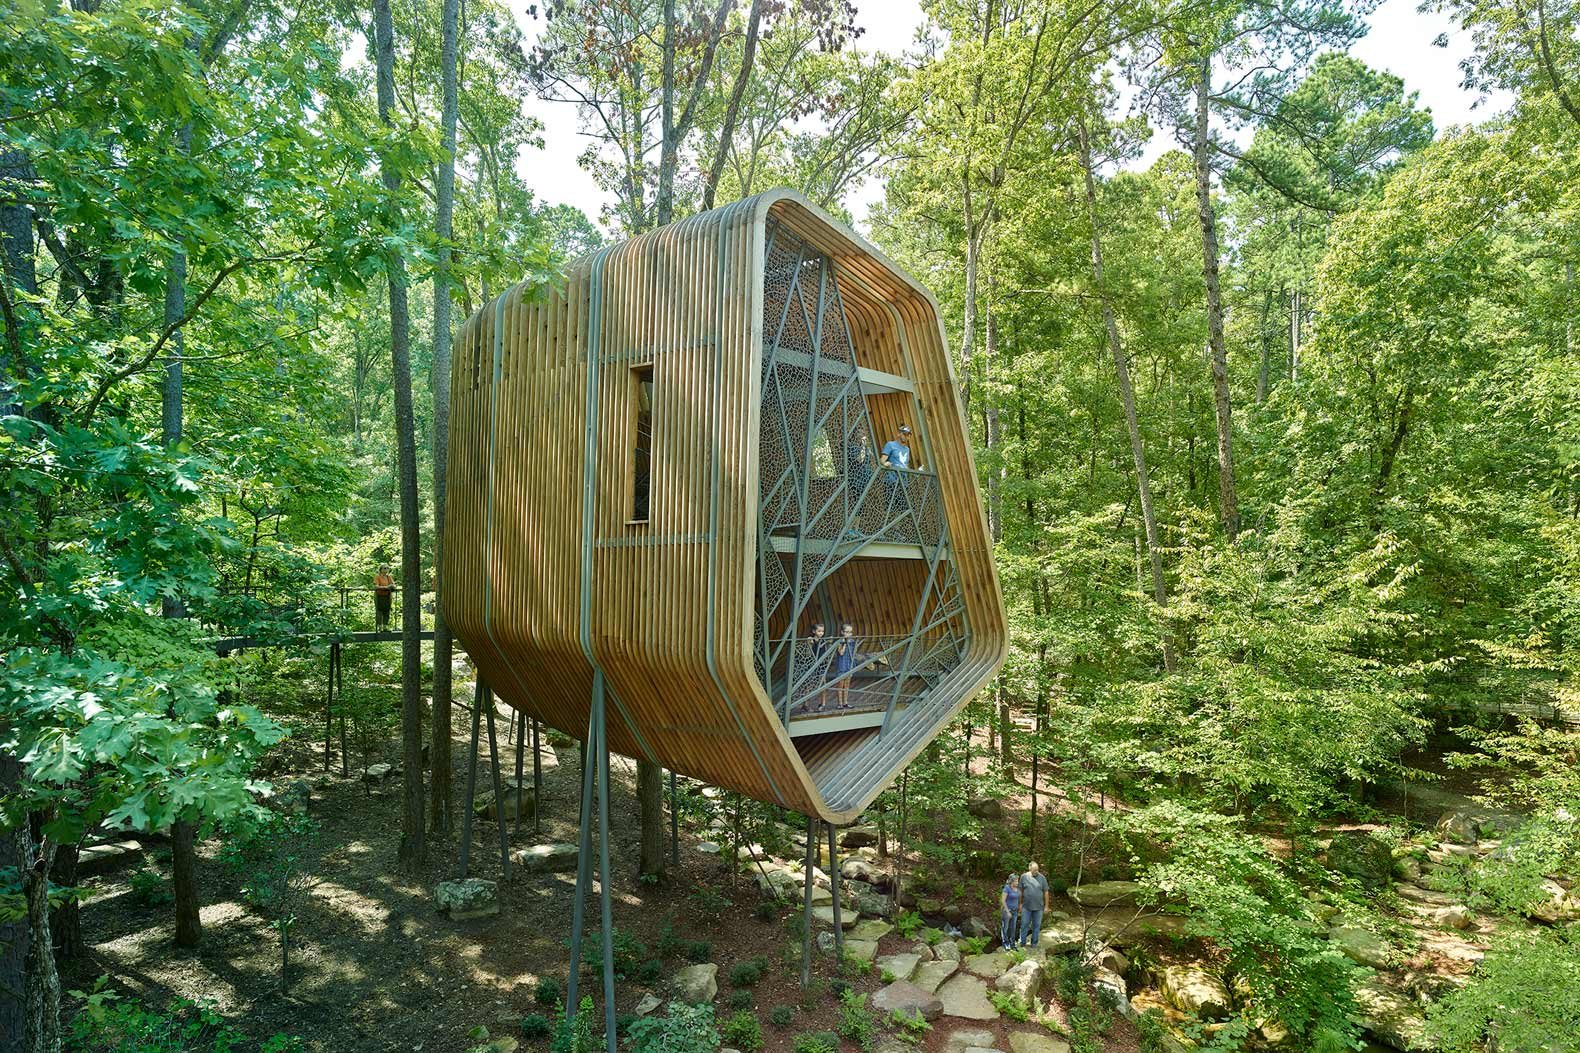 Futuristic treehouse in Arkansas is designed to inspire imagination